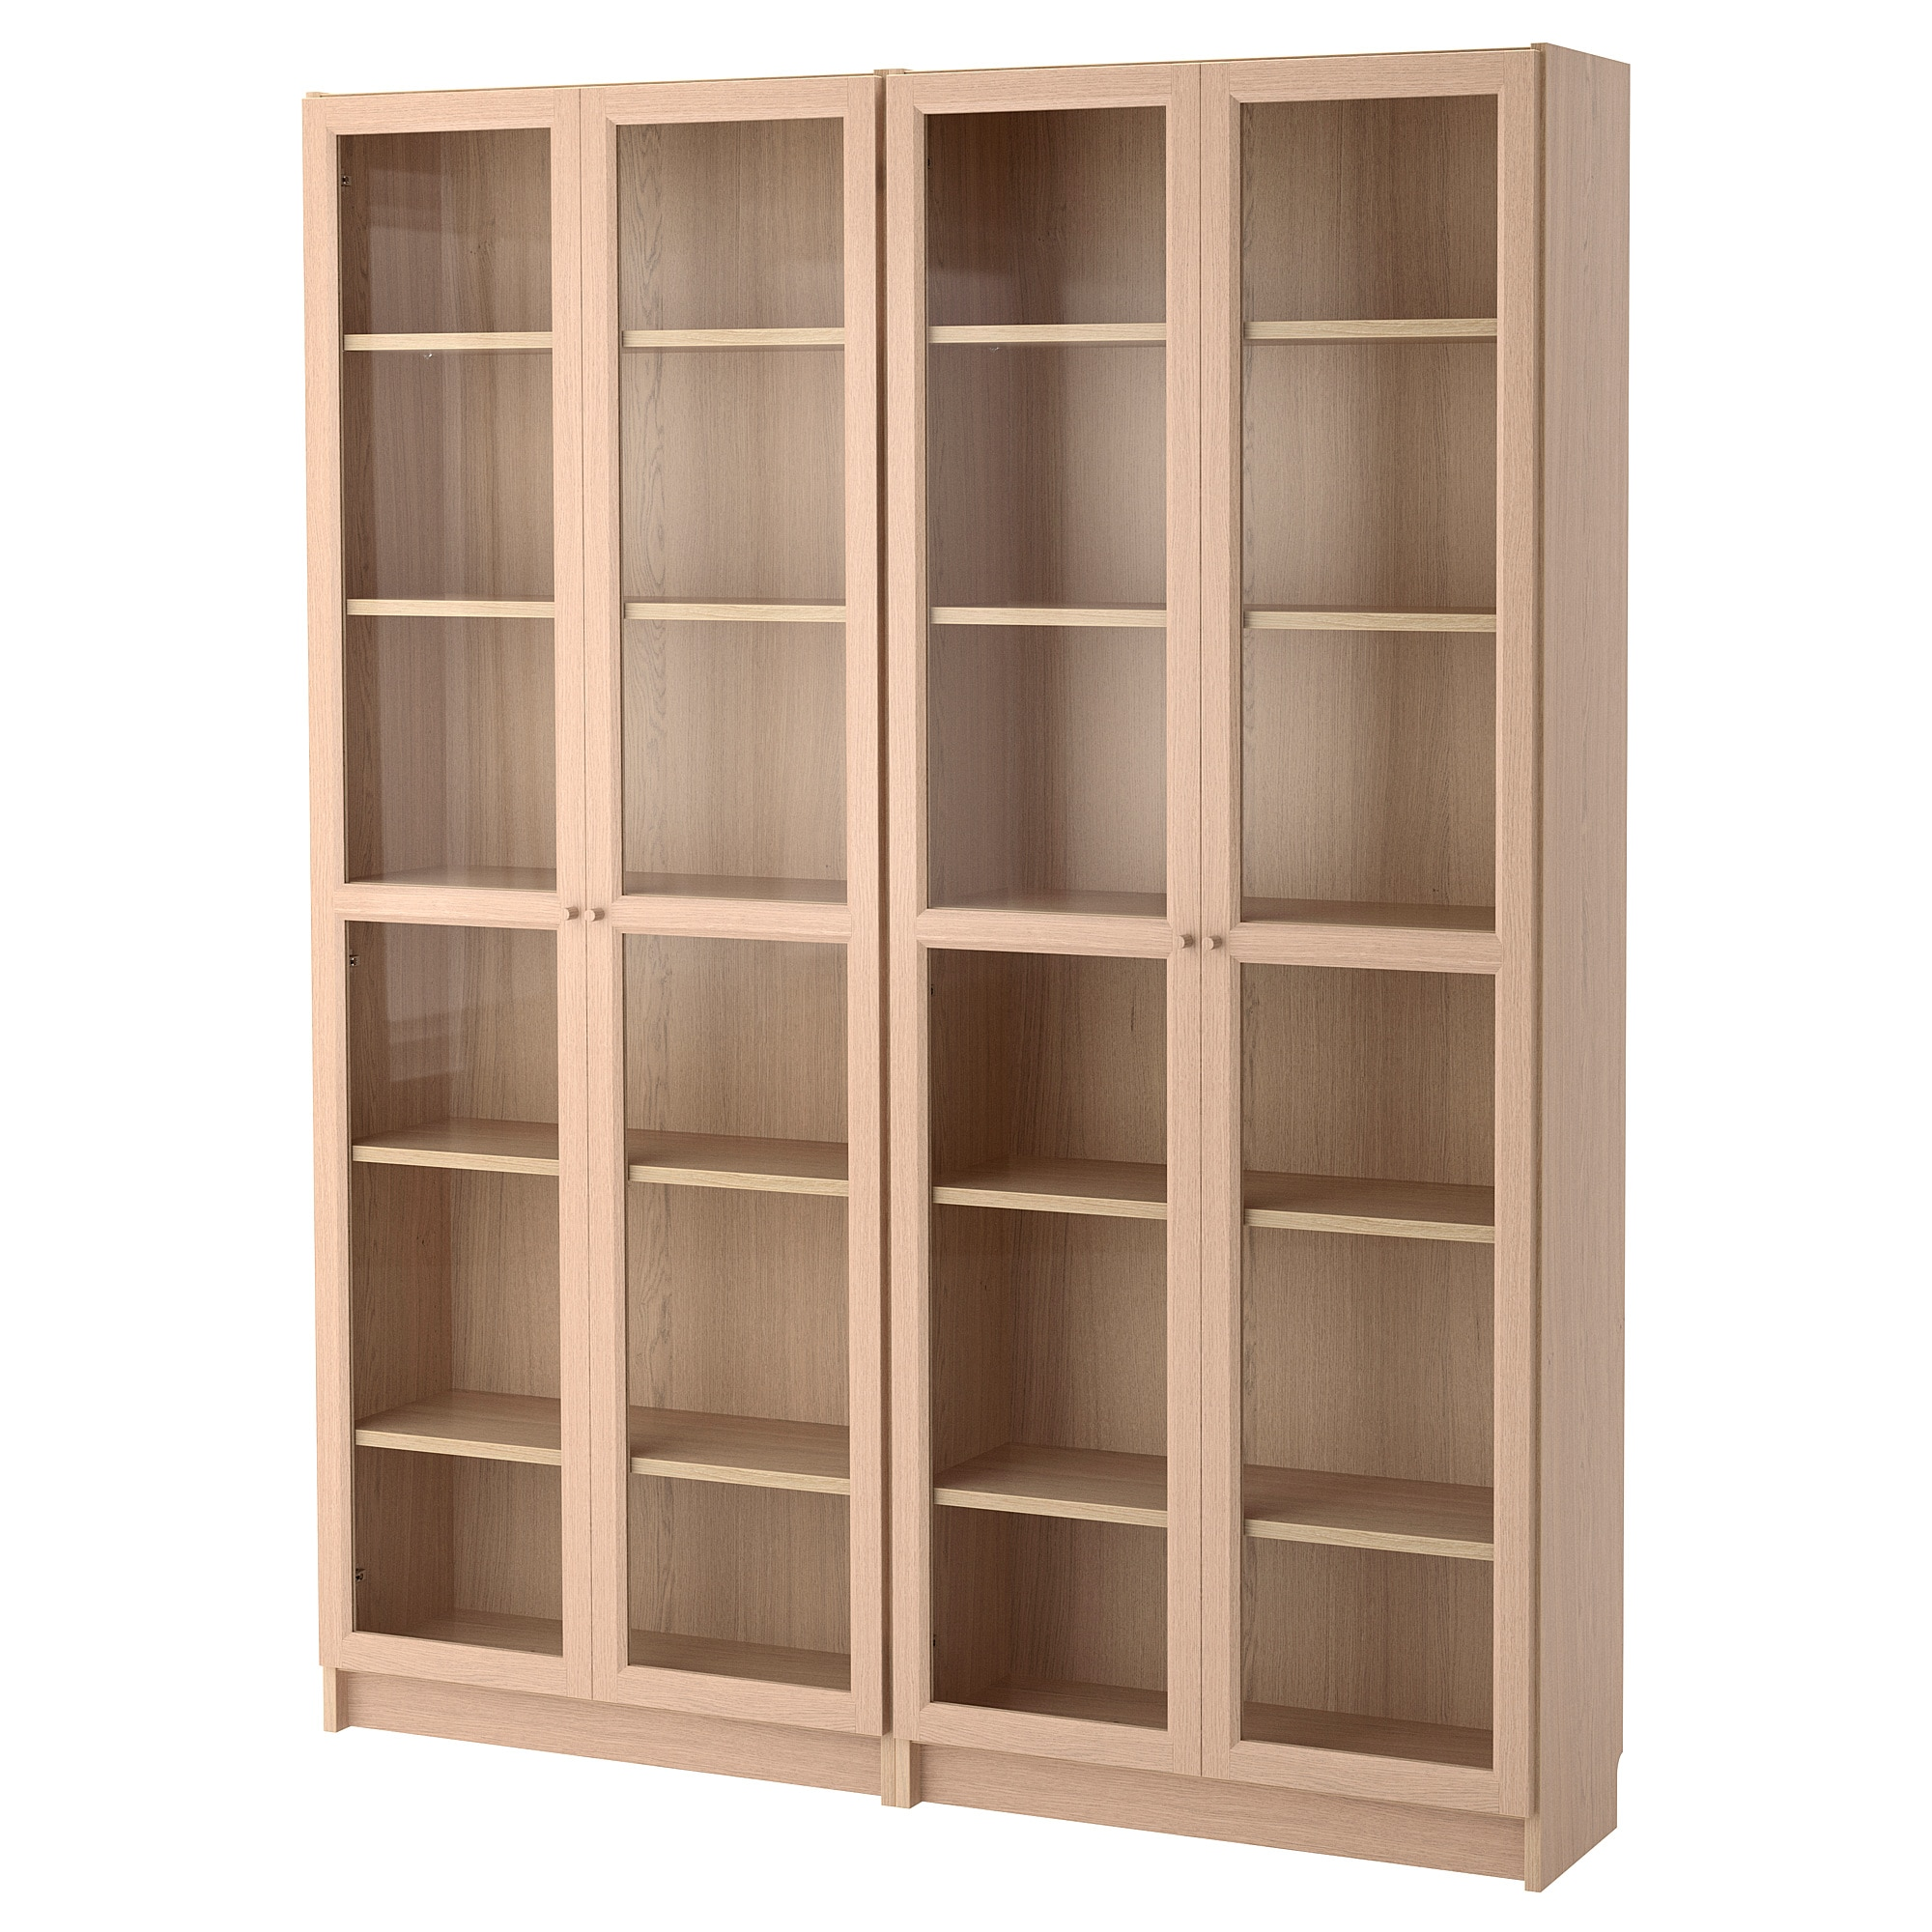 Billy Oxberg Bookcases Ikea Mit Bildern Bucherschrank Mit Glasturen Billy Oxberg Bucherregal Aus Holz